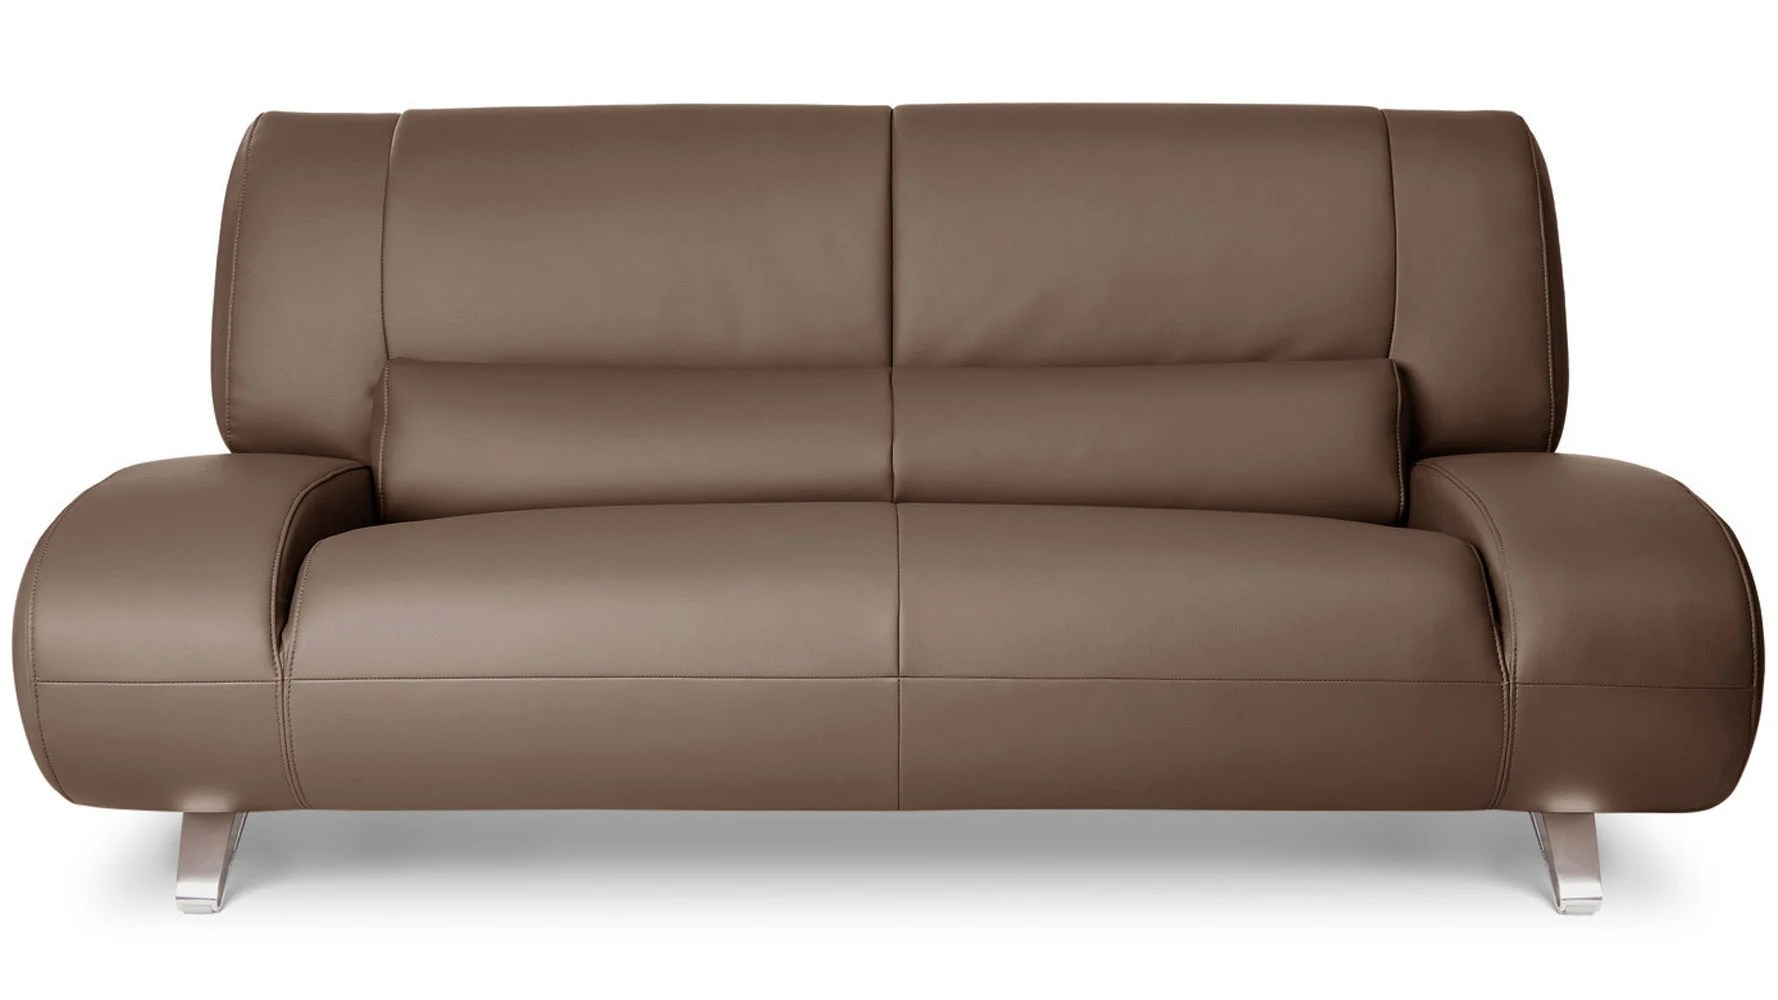 Big Sofa Aspen Aspen 2 Seater Zuri Furniture